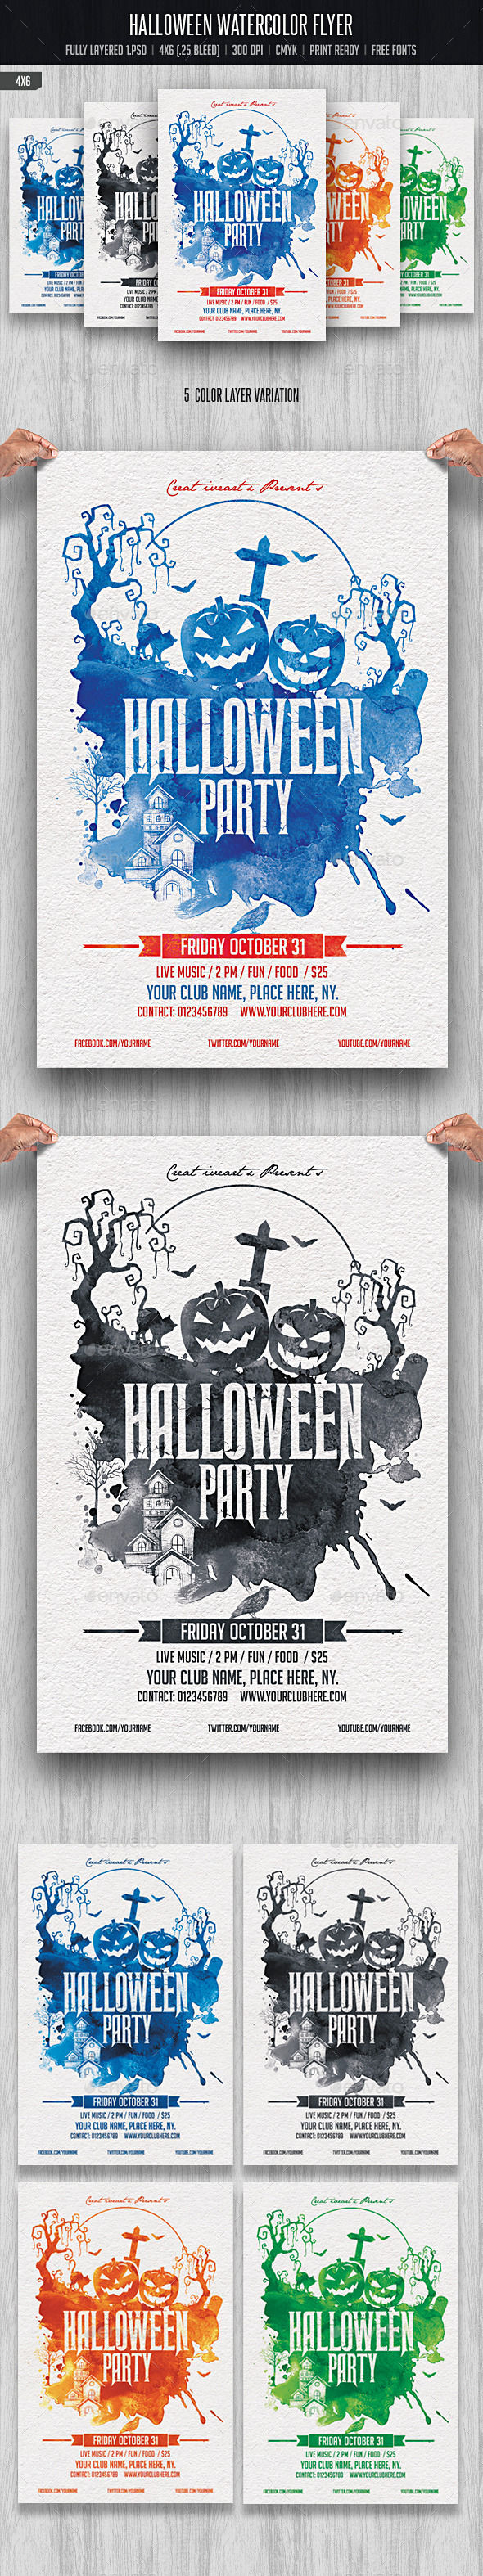 Halloween Watercolor Flyer by Creativeartx (Halloween party flyer)